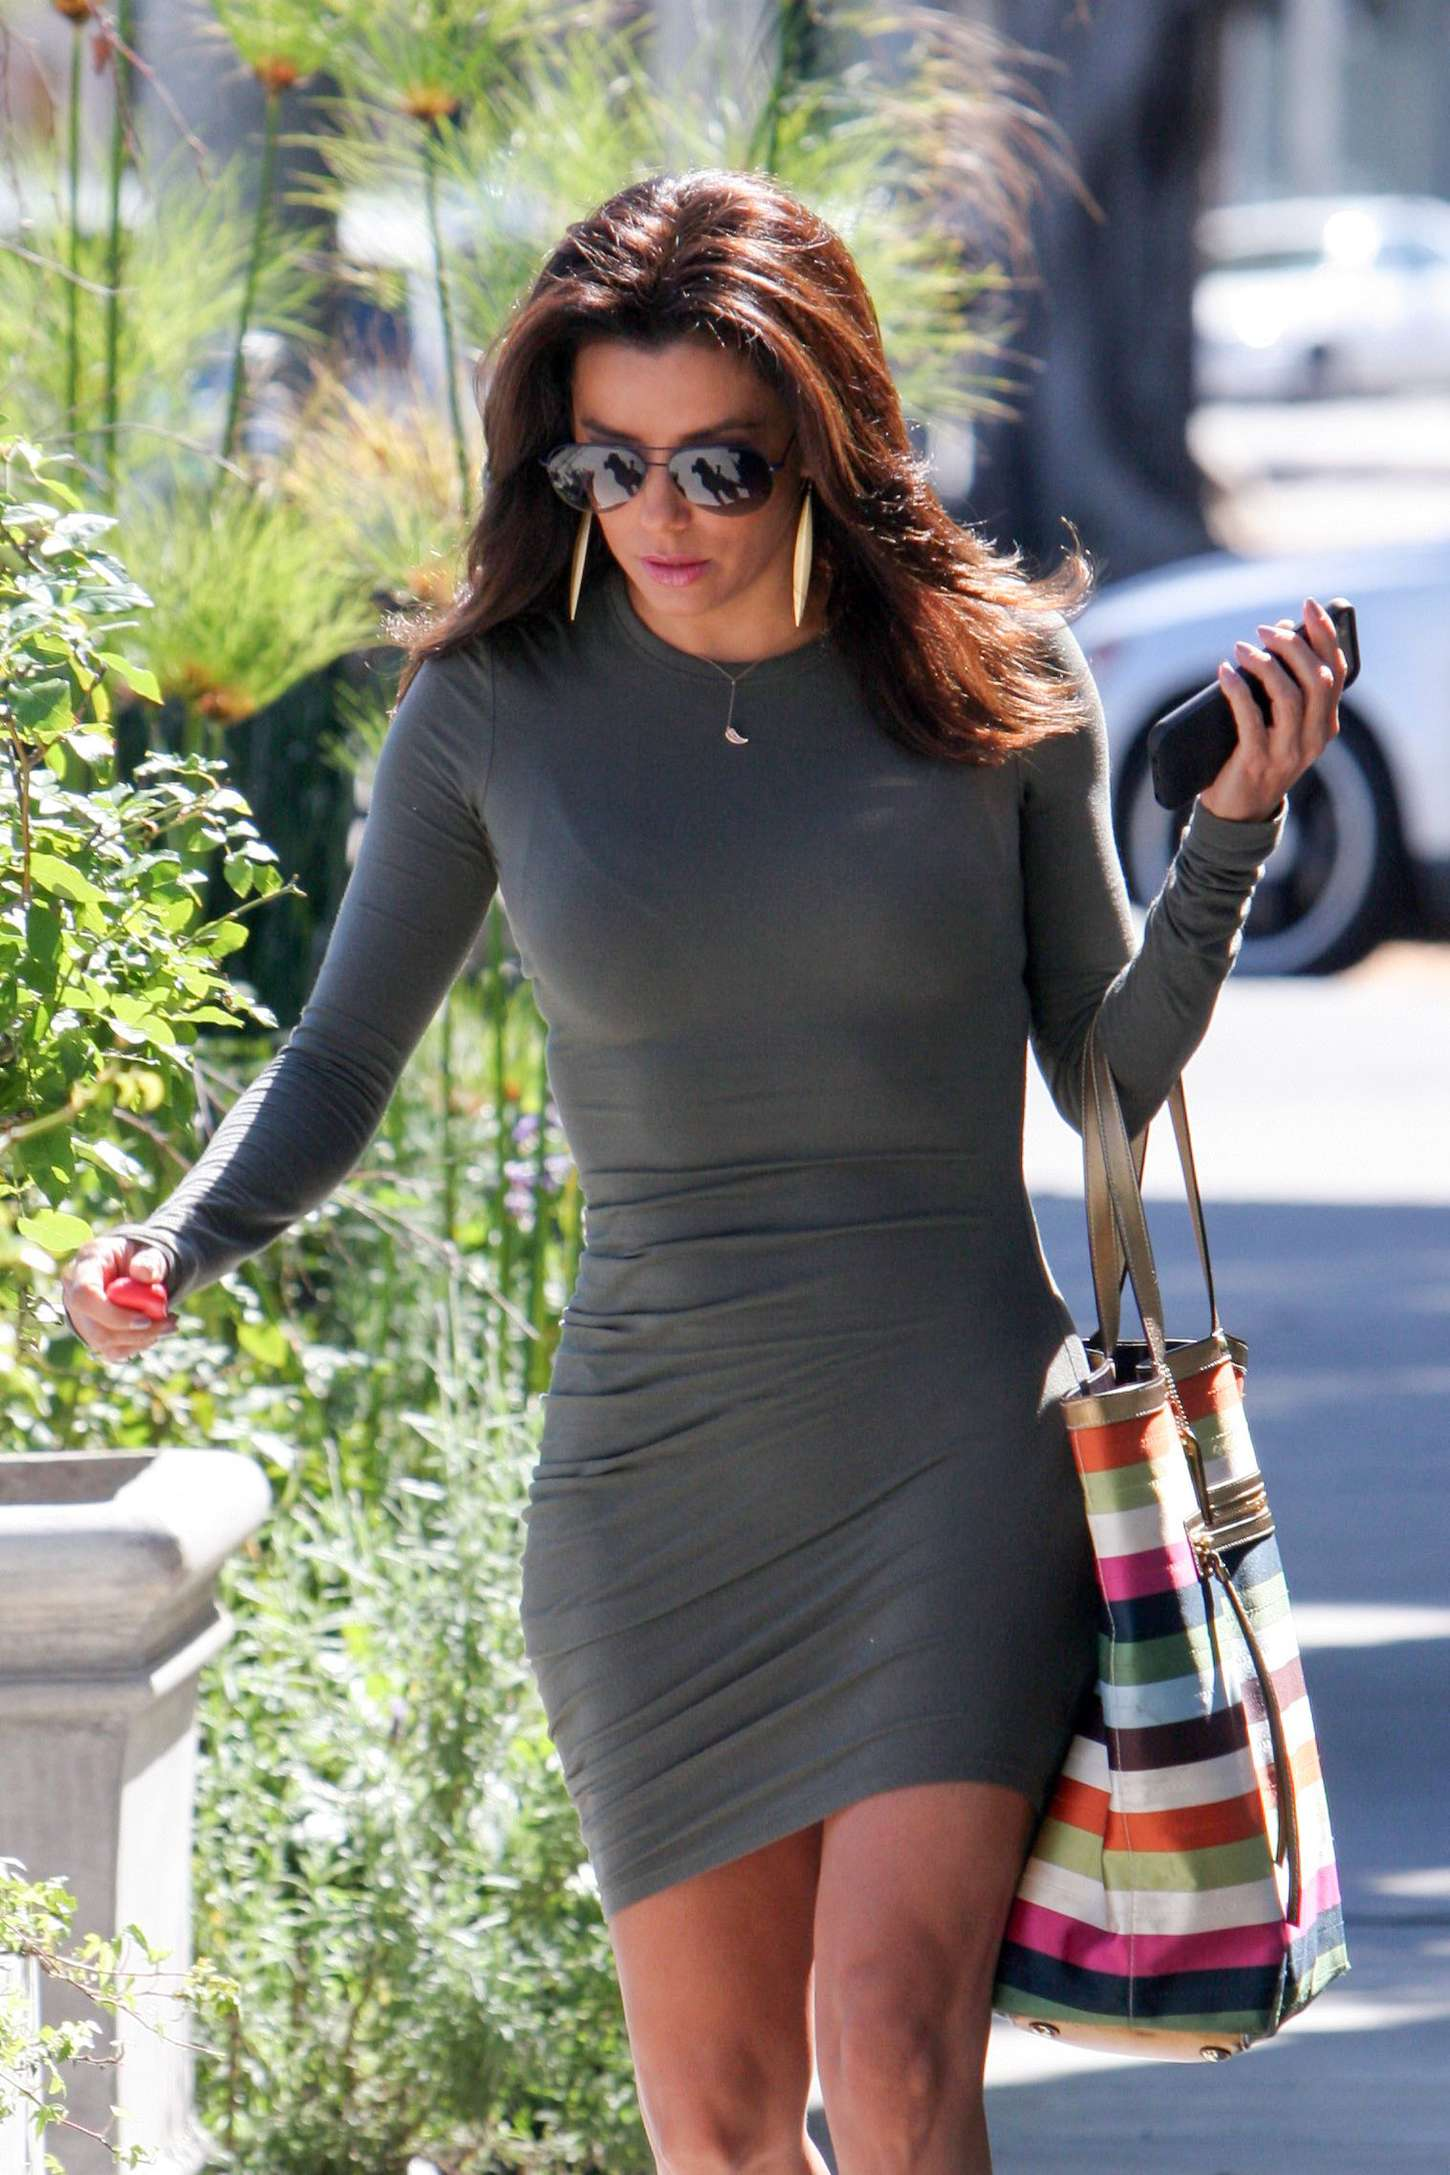 eva longoria in tight mini dress 02 gotceleb